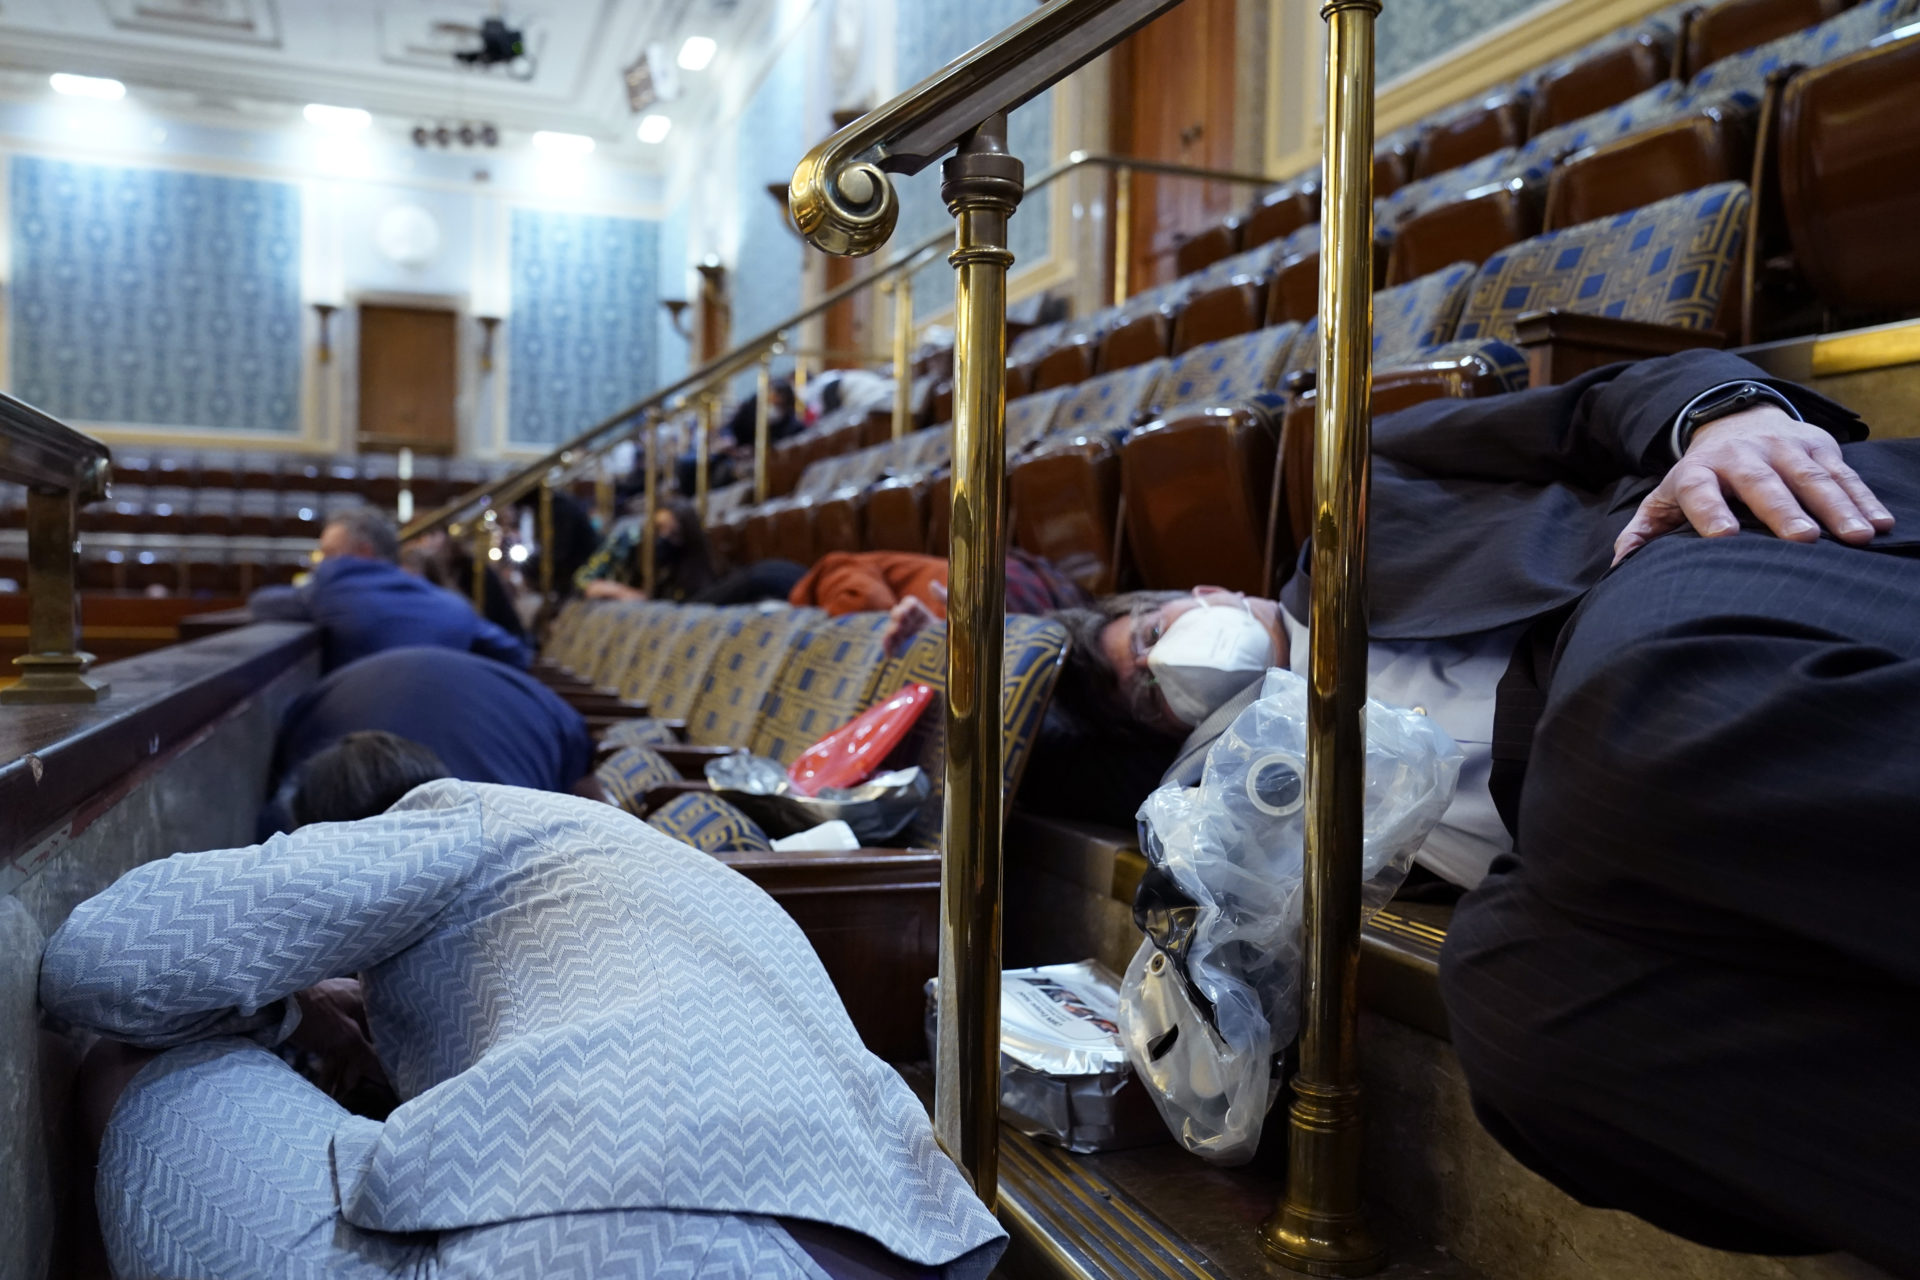 People shelter in the House gallery as protesters try to break into the House Chamber. (Andrew Harnik/AP)